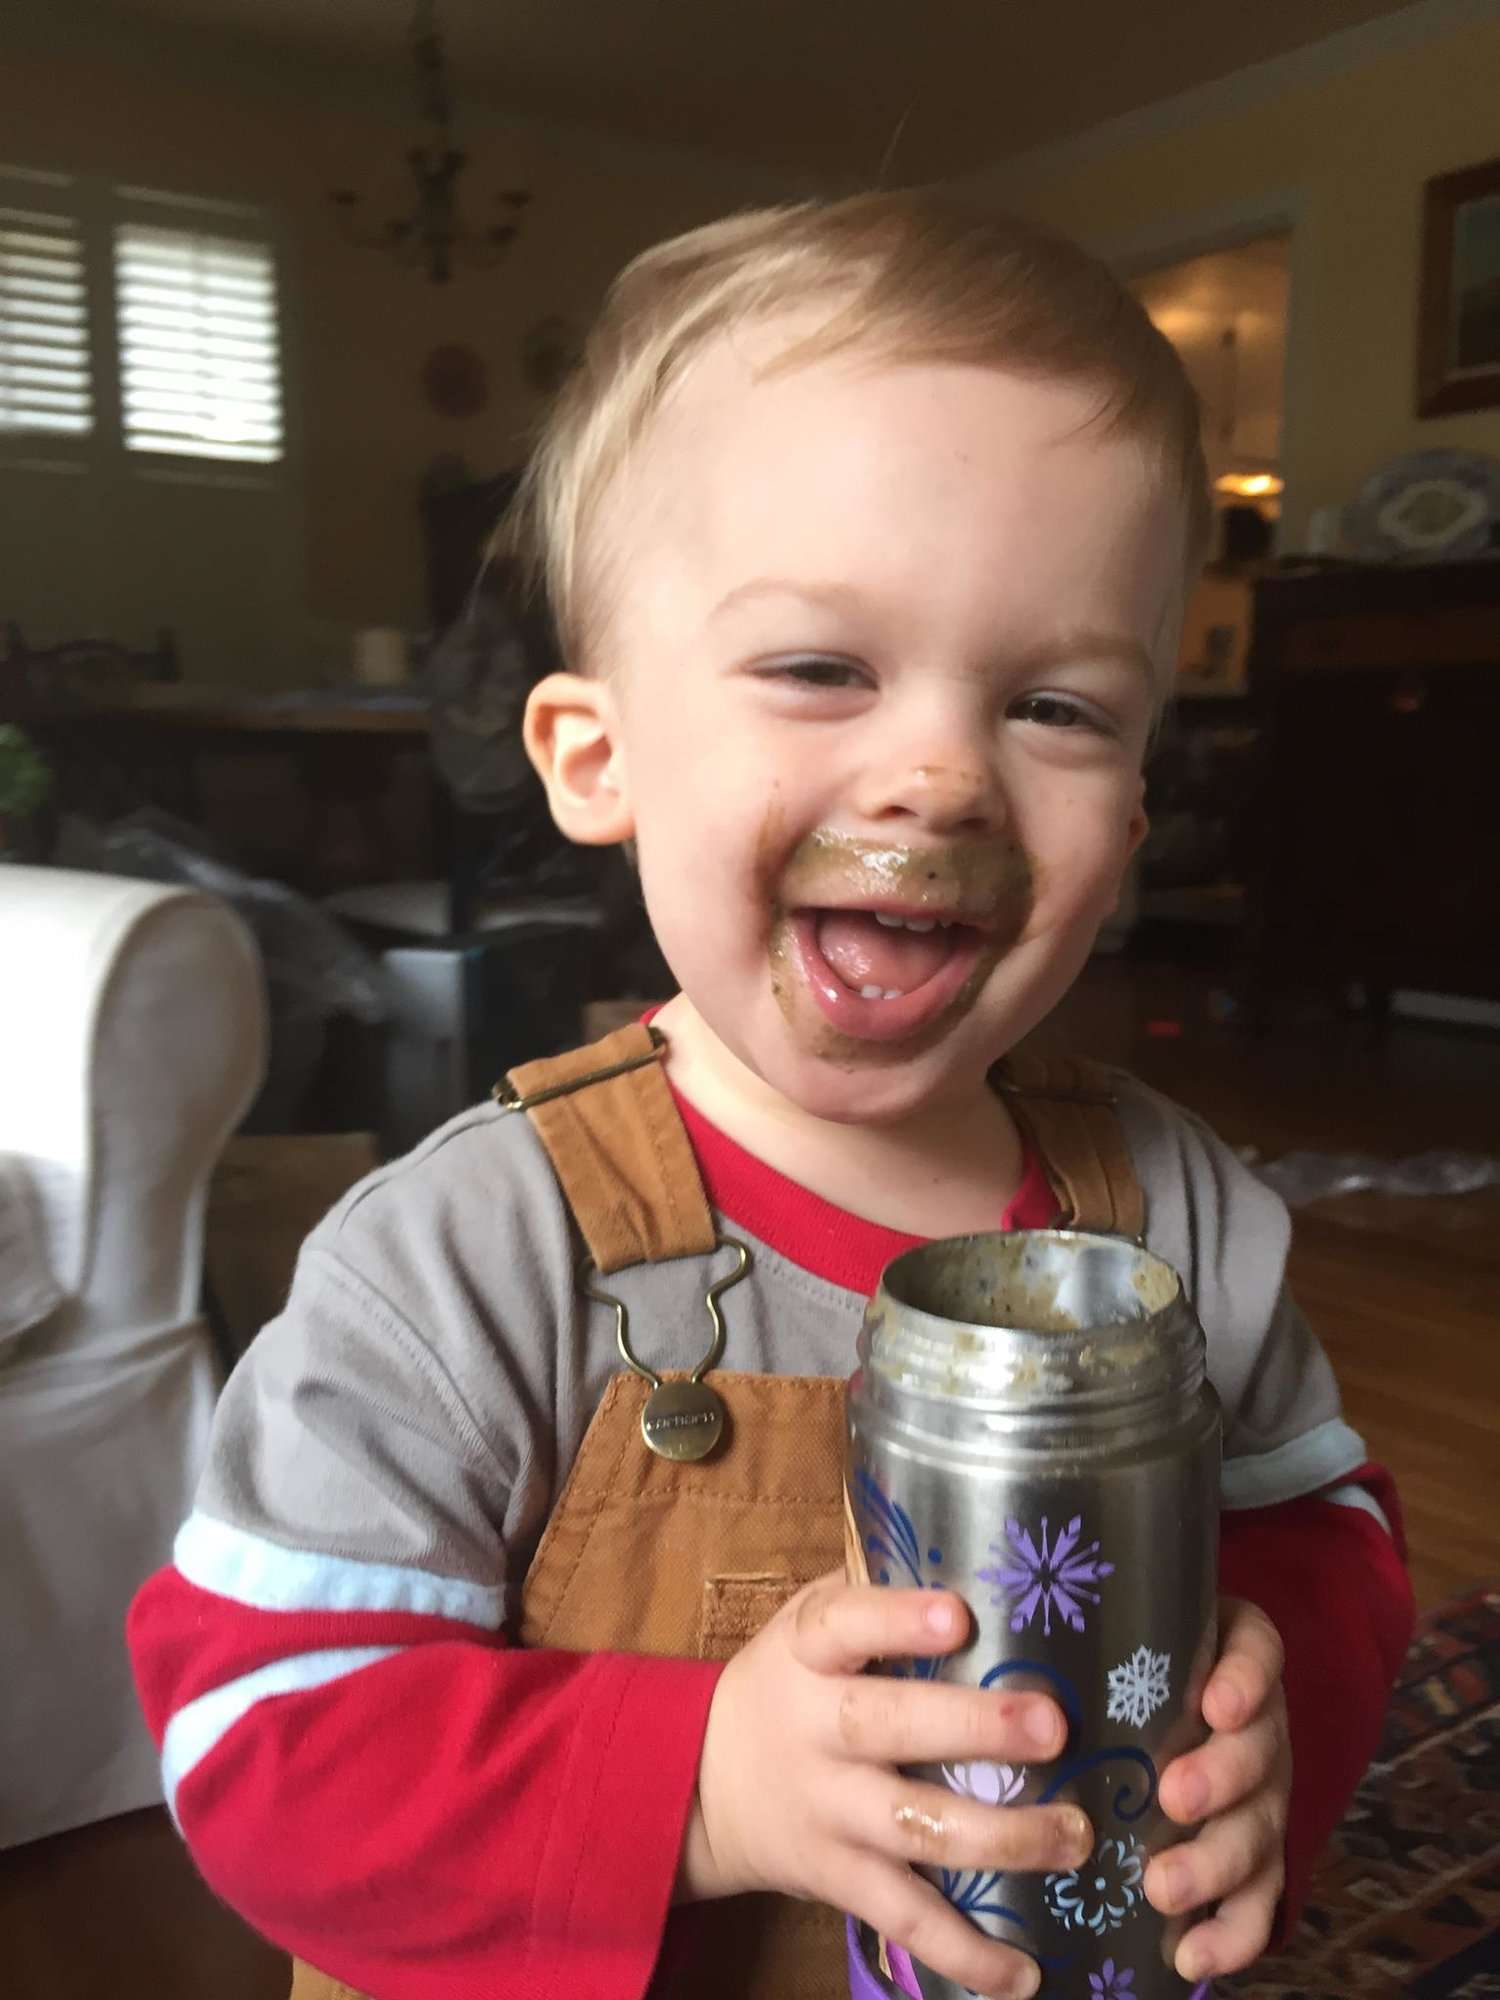 Favorite throw back photo of Teddy at age 1.5 with smoothie face - I LOVE that he loves green smoothies so much!!